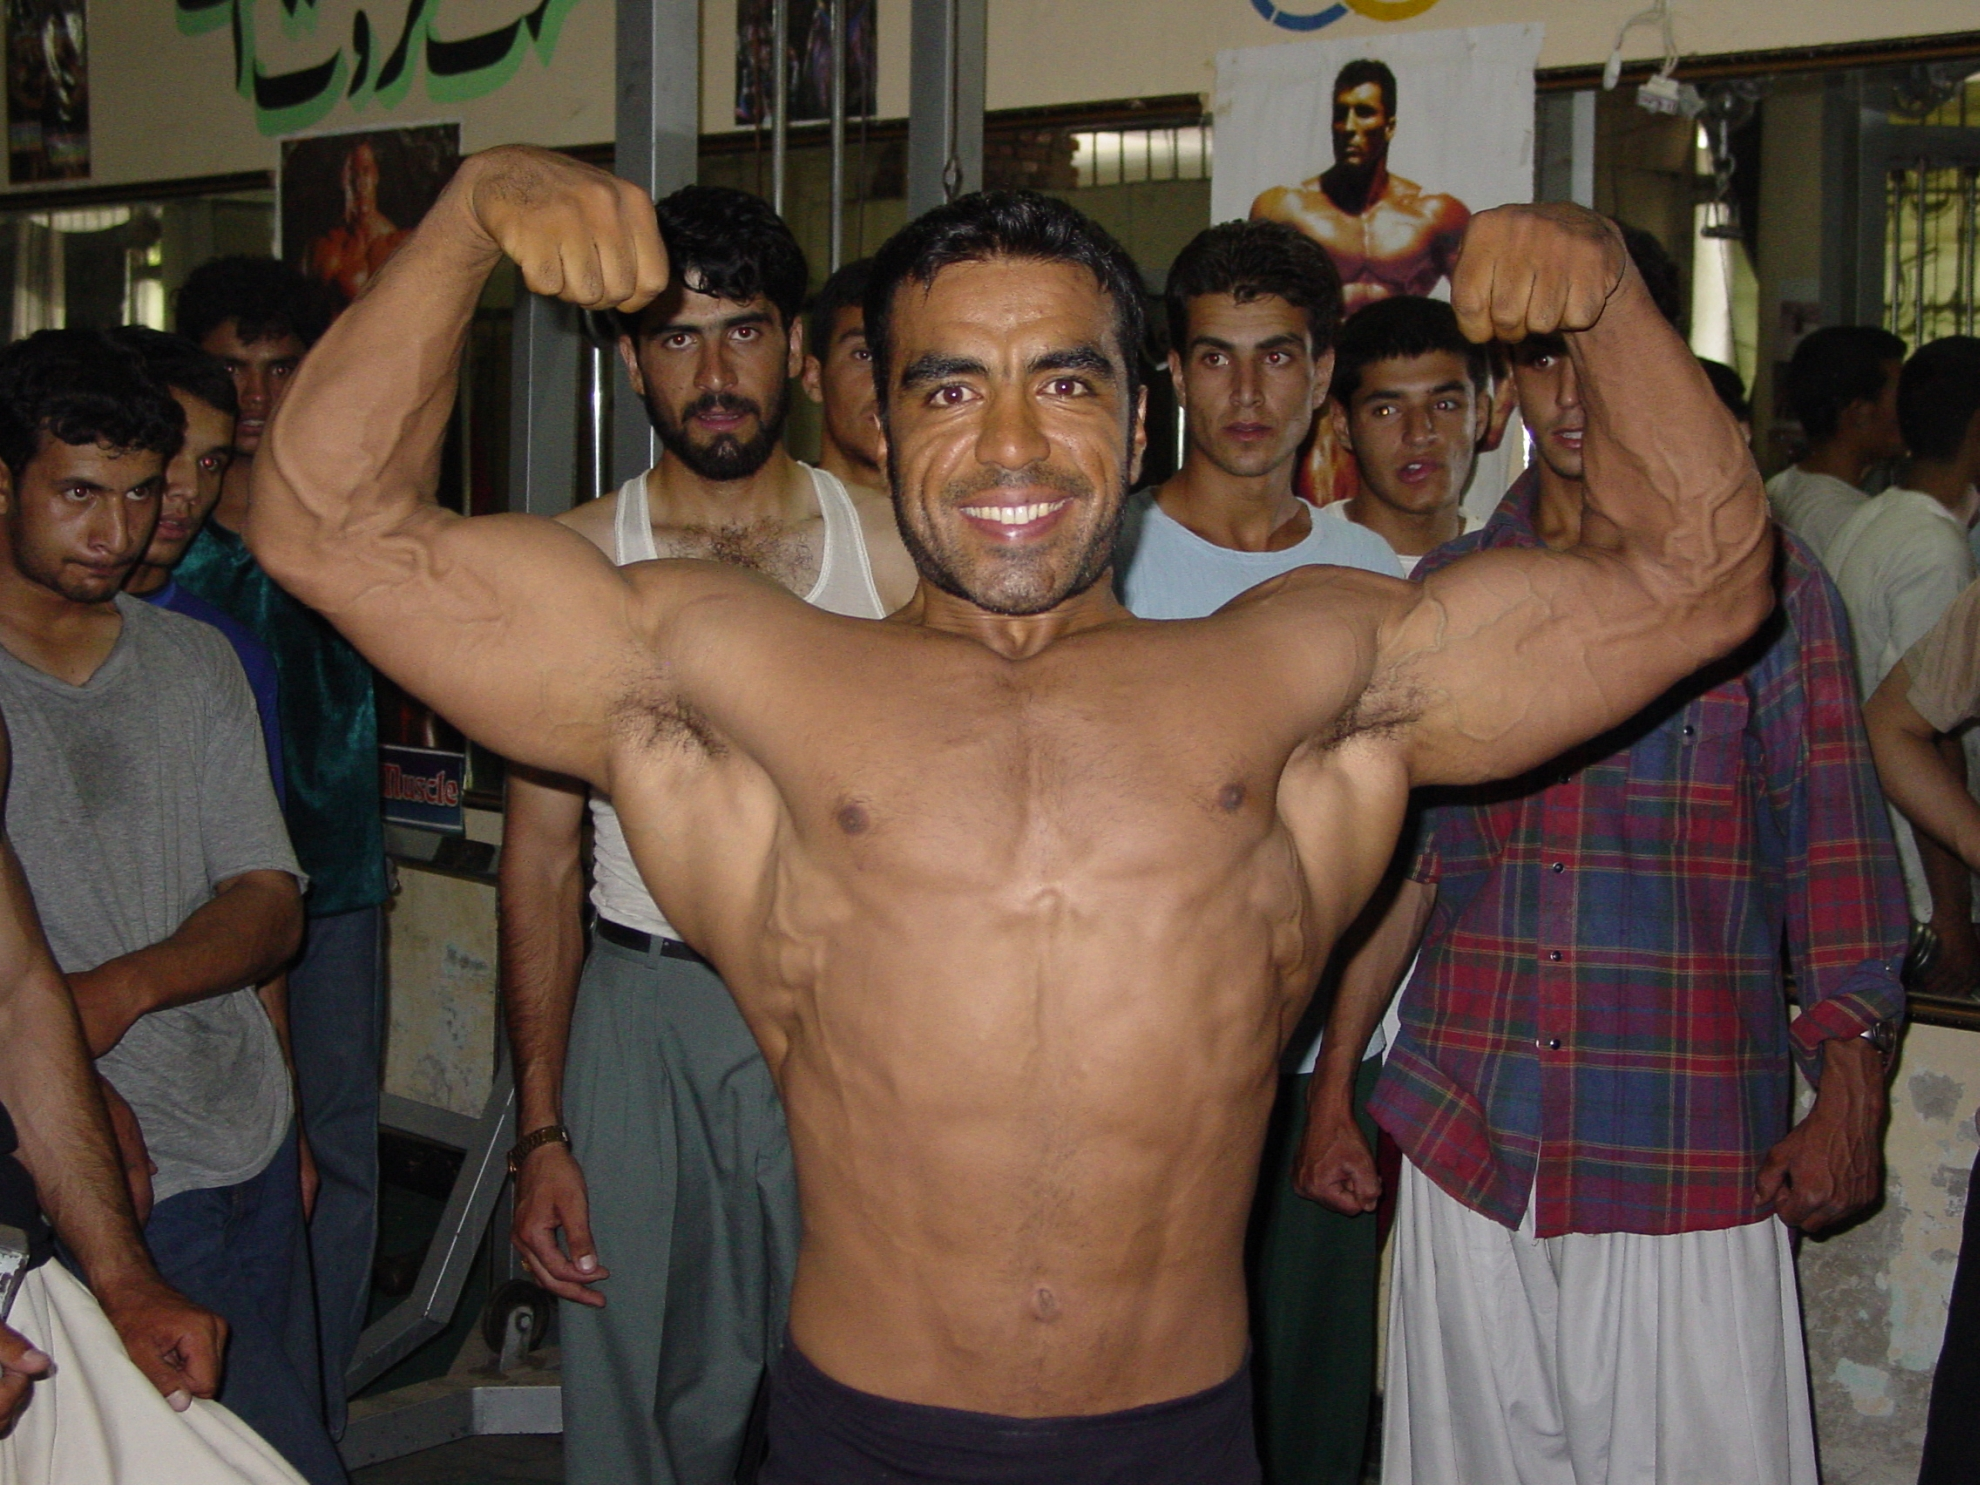 """I have studied Arnold Schwarzenegger's career in detail. He accomplished everything he strove for. I too have dreams."" So says Noorulhoda Shirzad. He is one of Afghanistan's many bodybuilders who uses workout to create a meaningful existence in a society marked by tragedy. Photo: Jens Kjær Jensen, 2003"